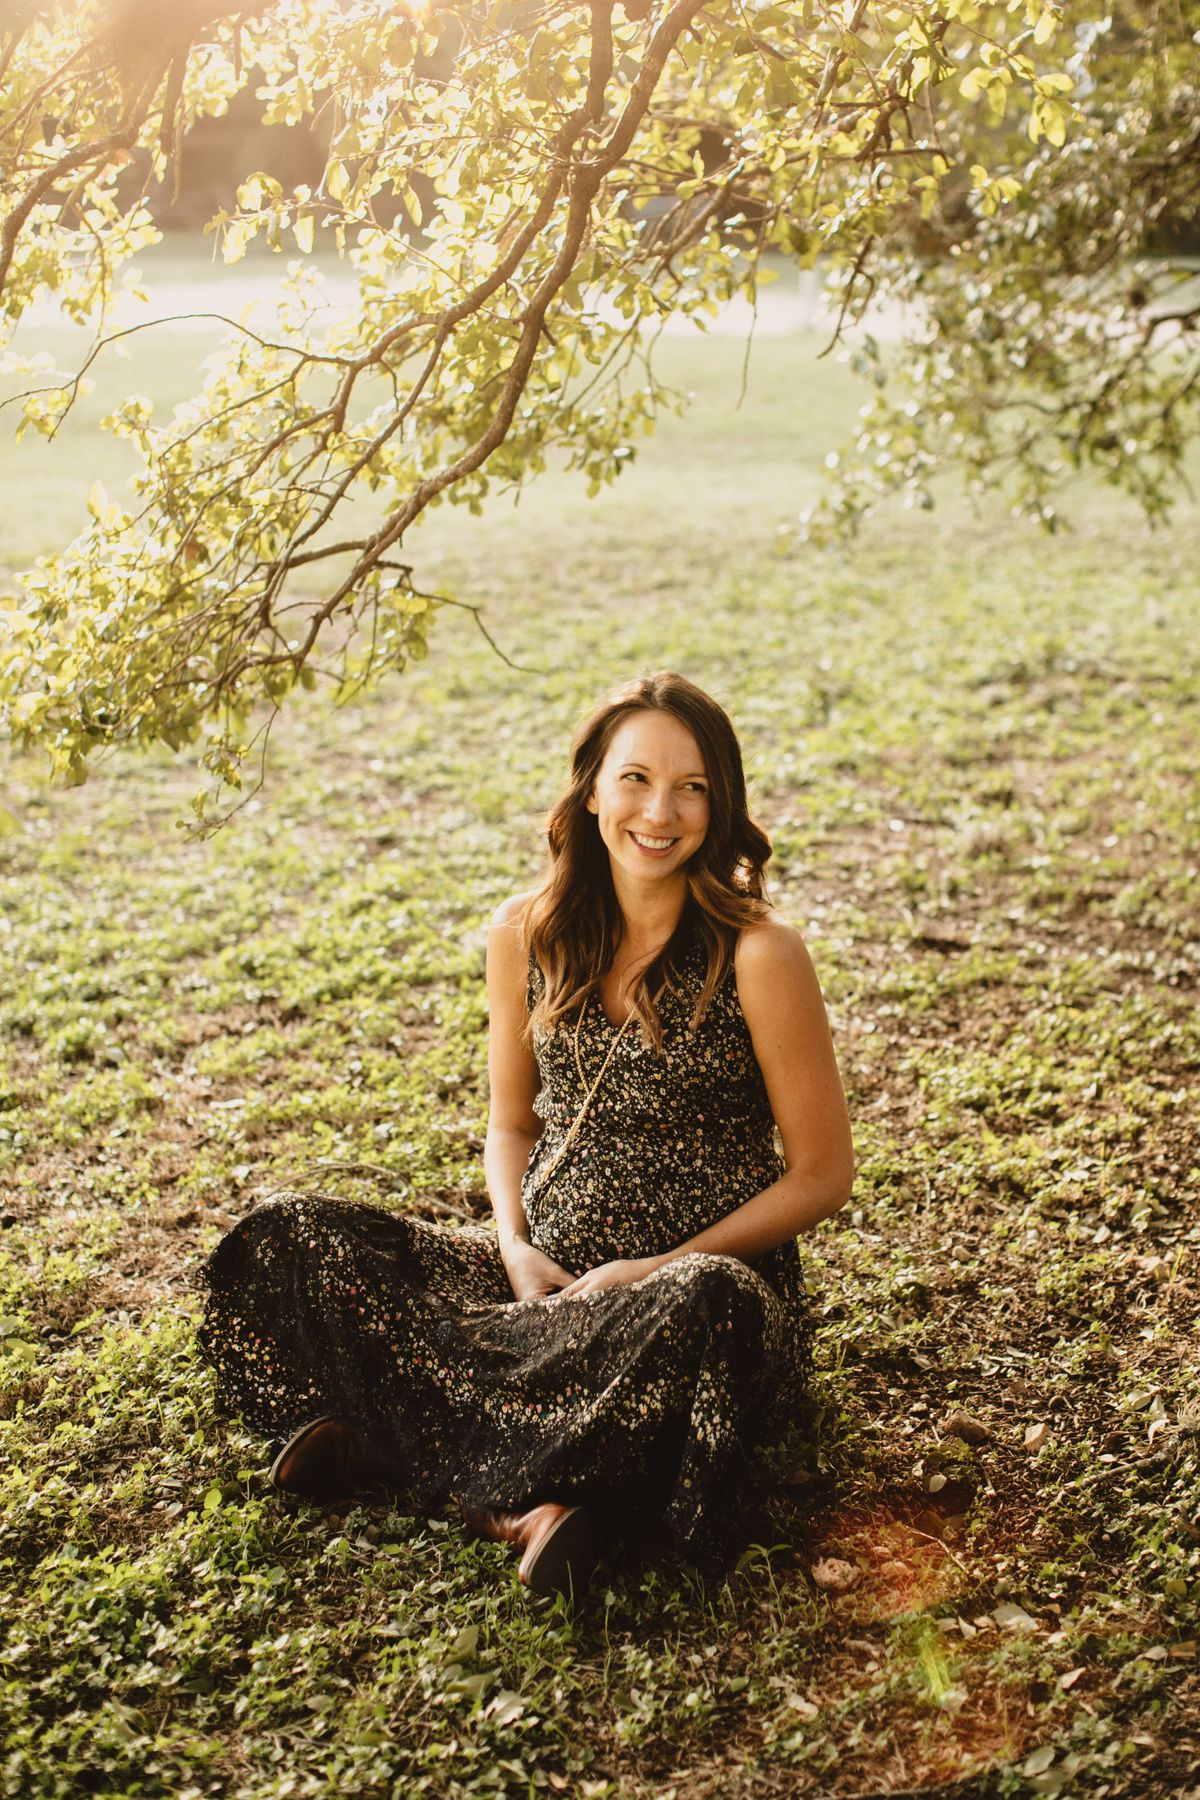 laurens-maternity-pictures-at-bull-creek-park-in-austin-tx-0001.jpg